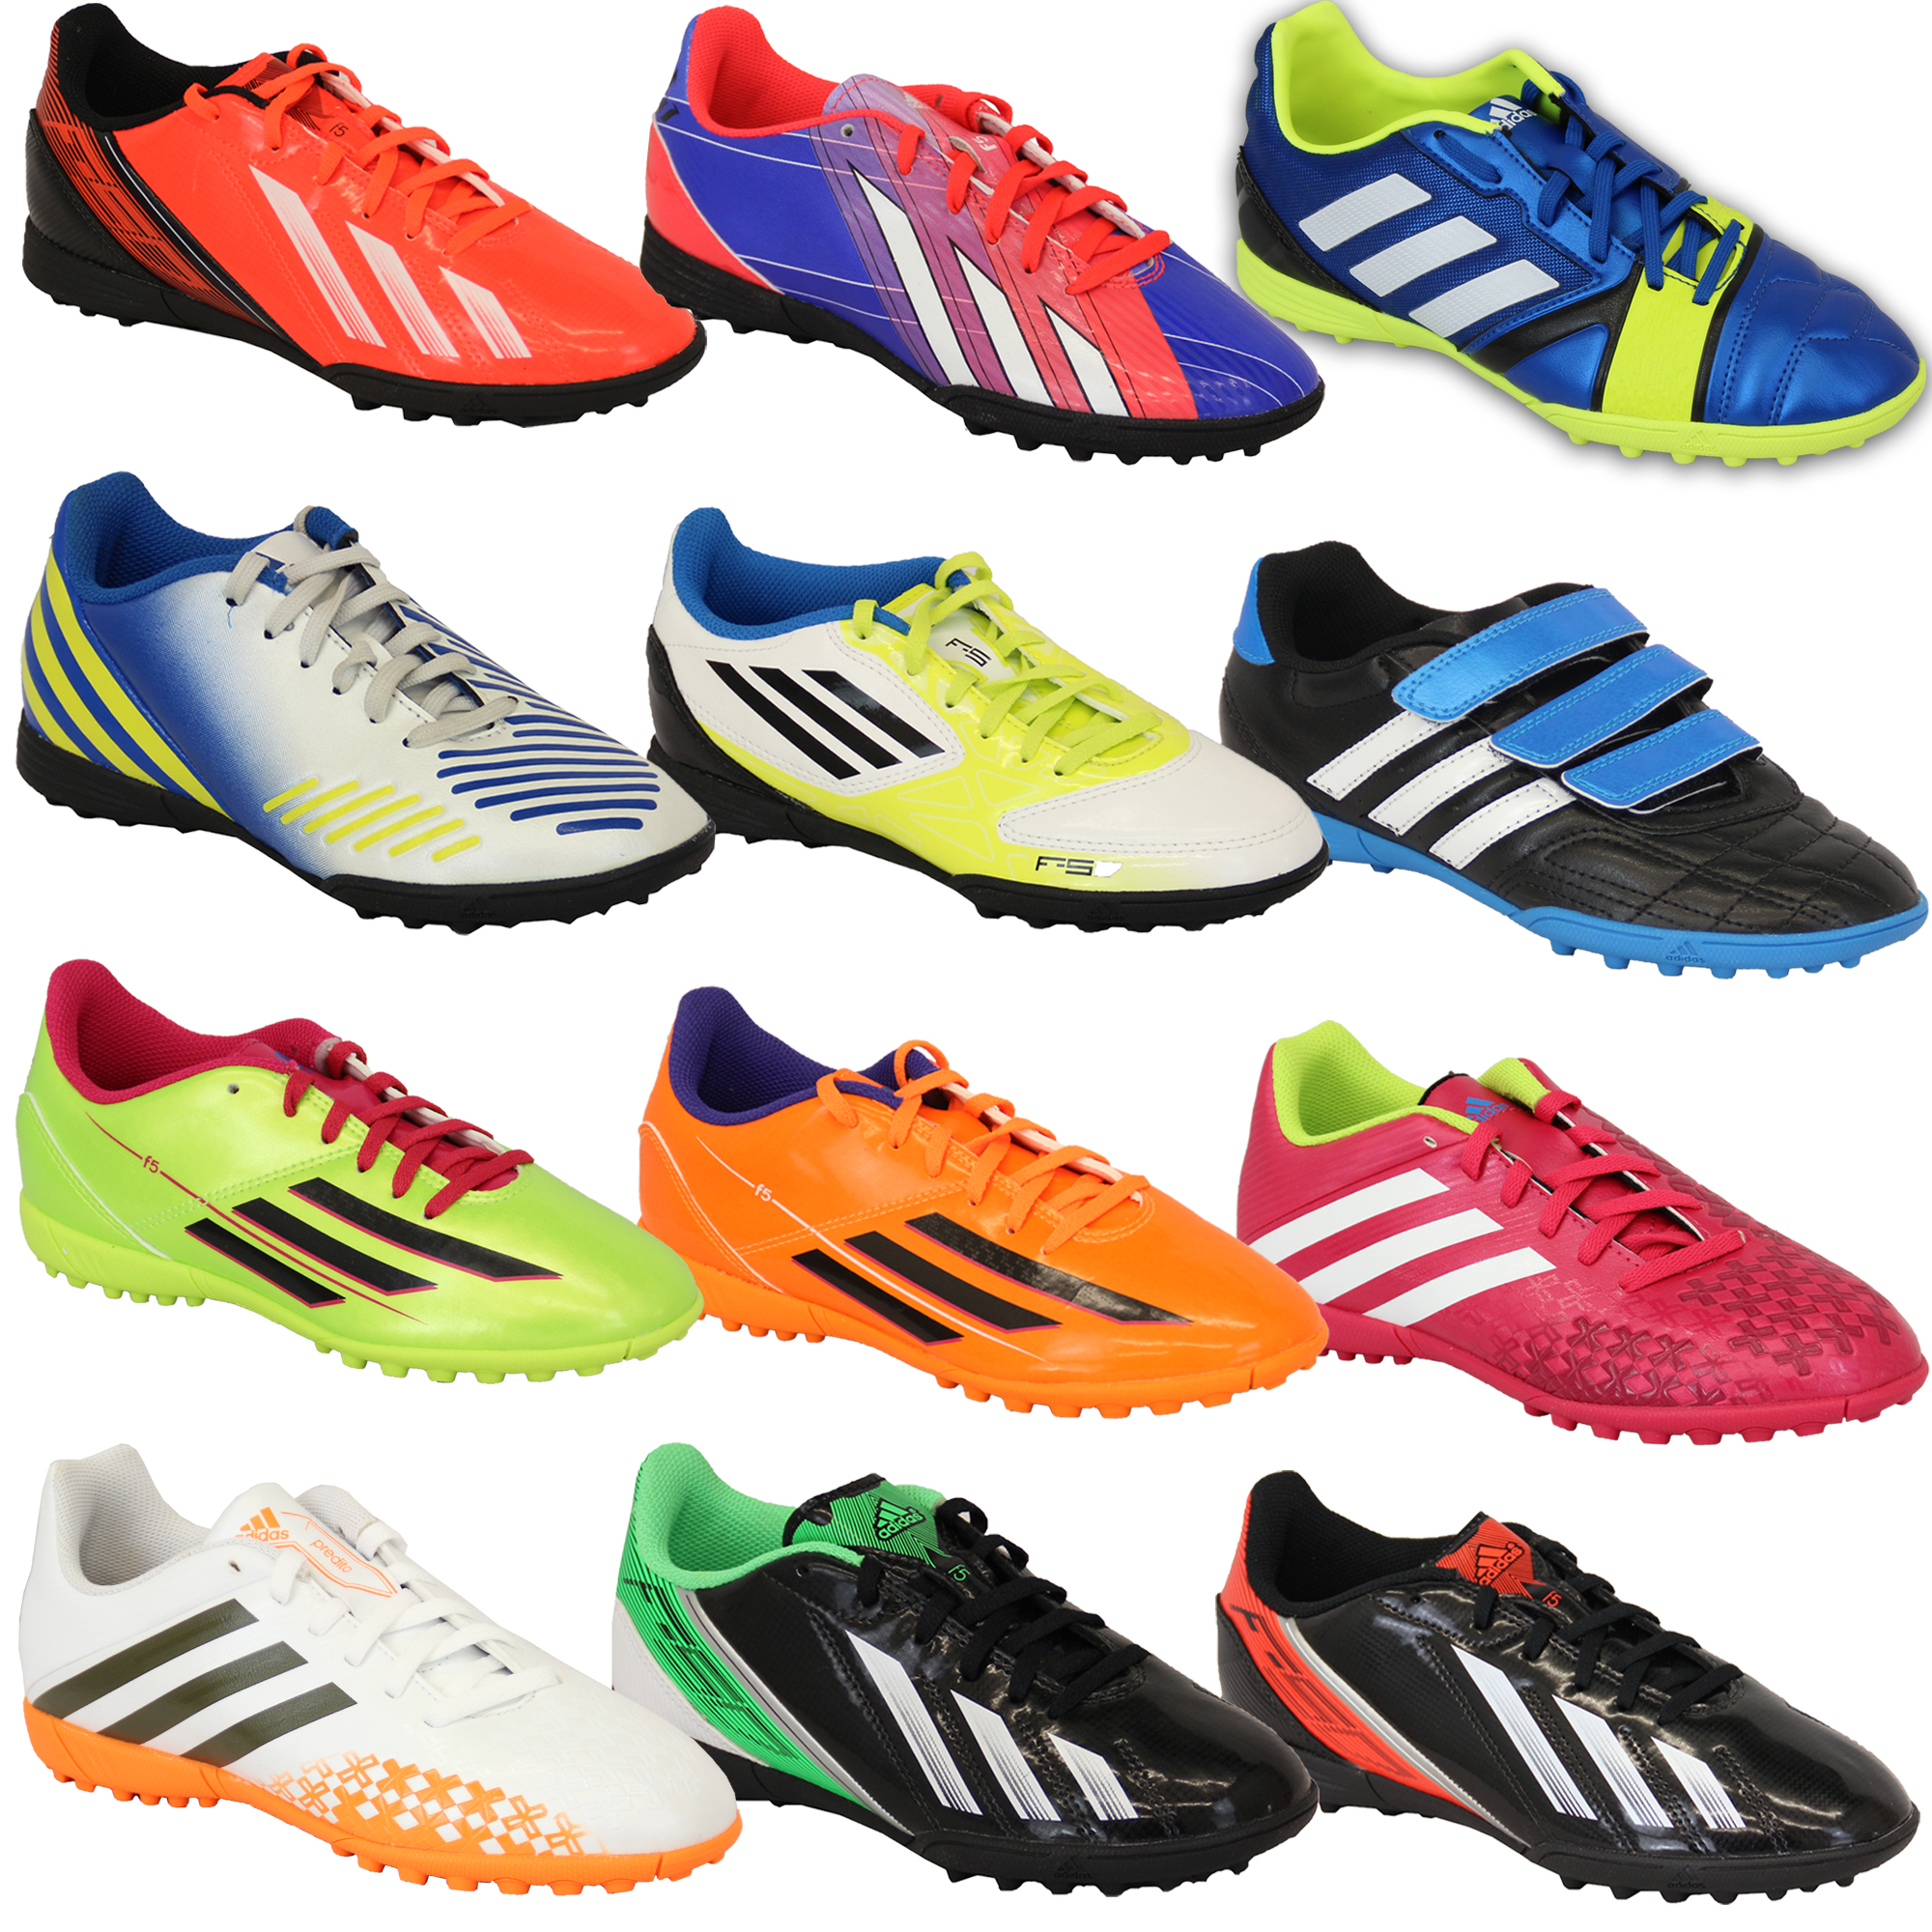 Boys-ADIDAS-Trainers-Kids-Football-Soccer-Astro-Turf-Shoes-Lace-Up-Neon-Youth thumbnail 6